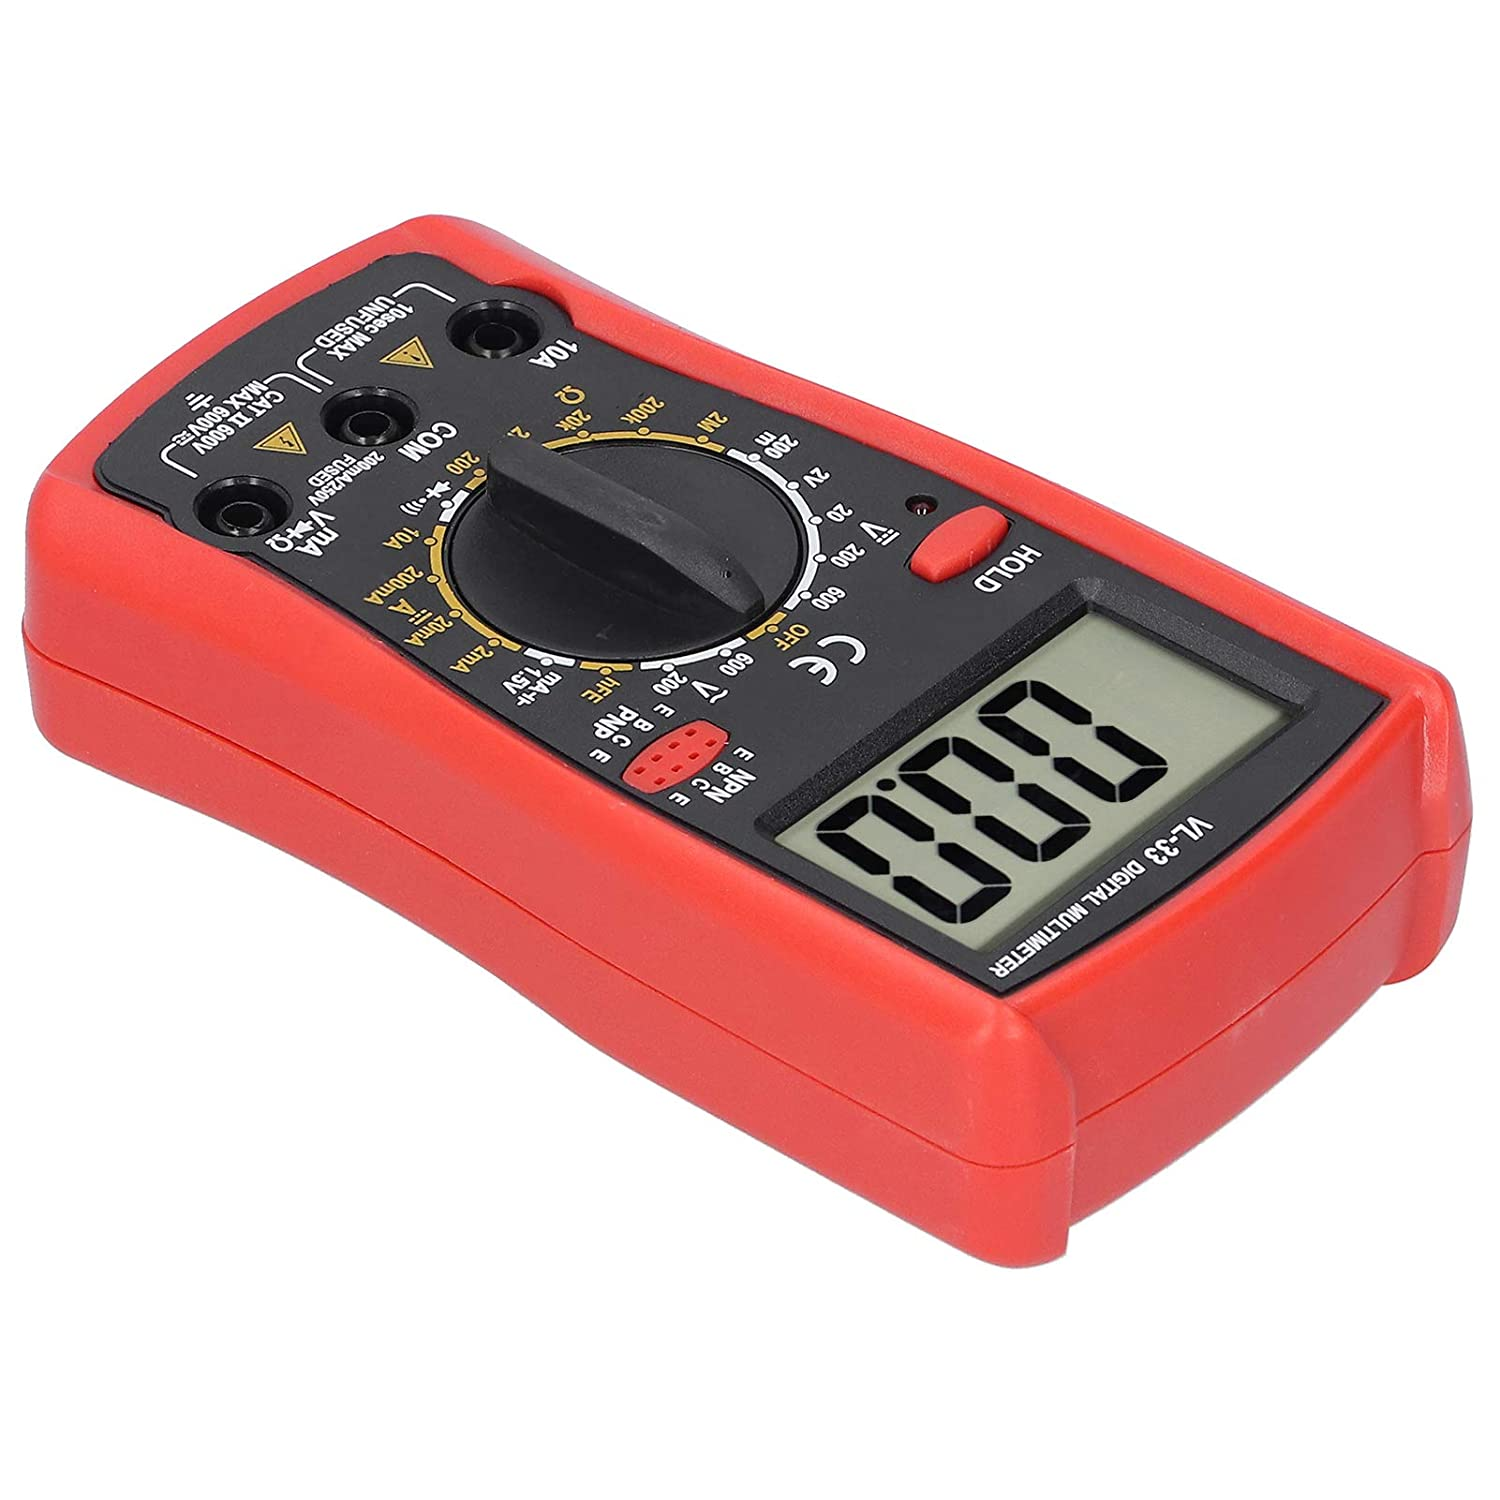 Clear Fashion Stable Voltage Test At the price Meter Reliability high Portab Accurate